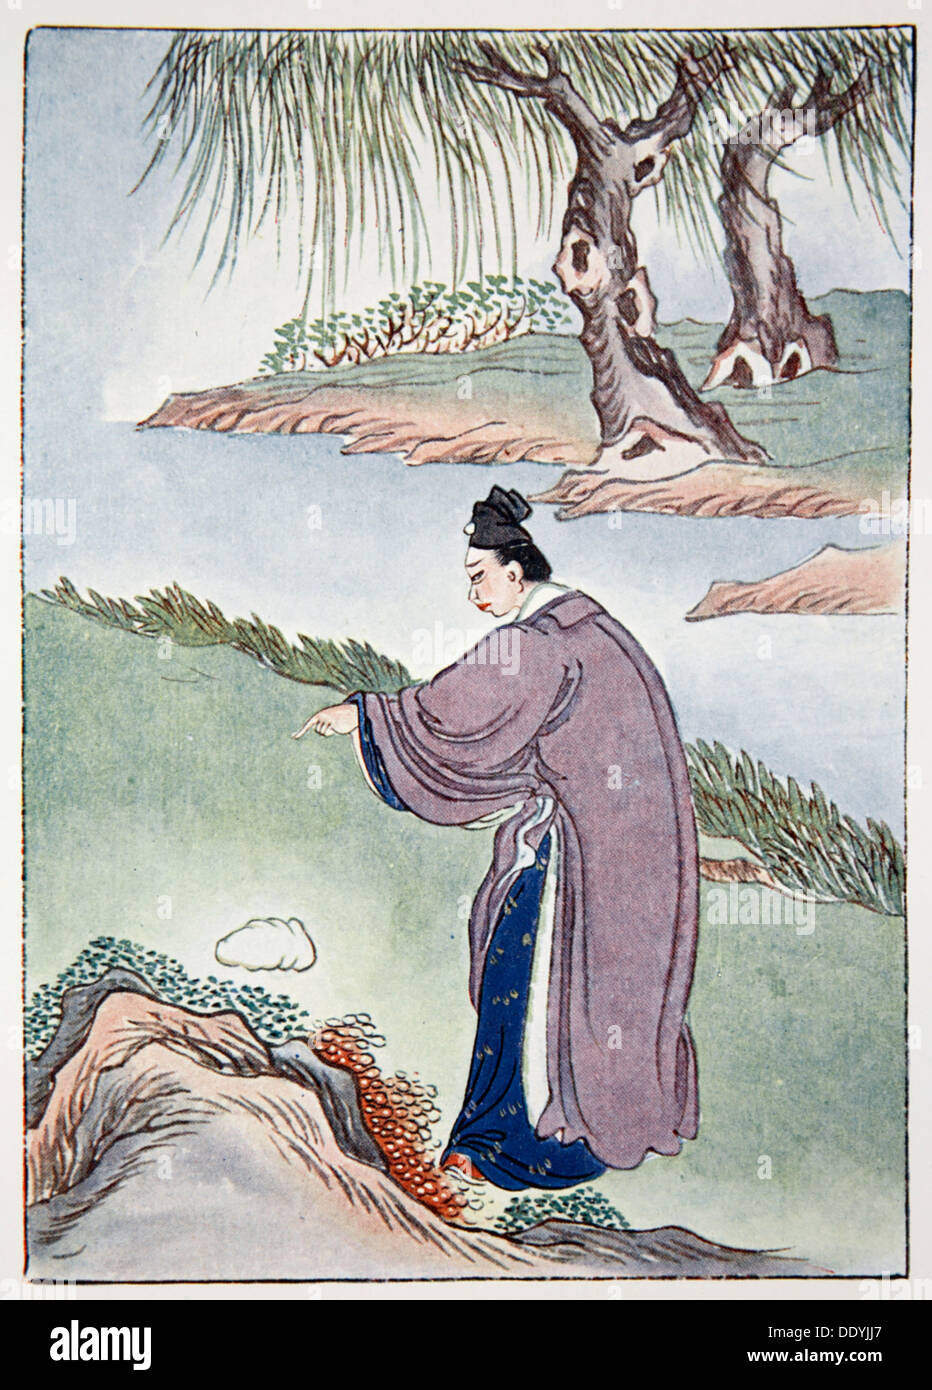 Chia Tzu-Lung finds the stone belonging to Mr Chen the alchemist, 1922. Artist: Unknown - Stock Image